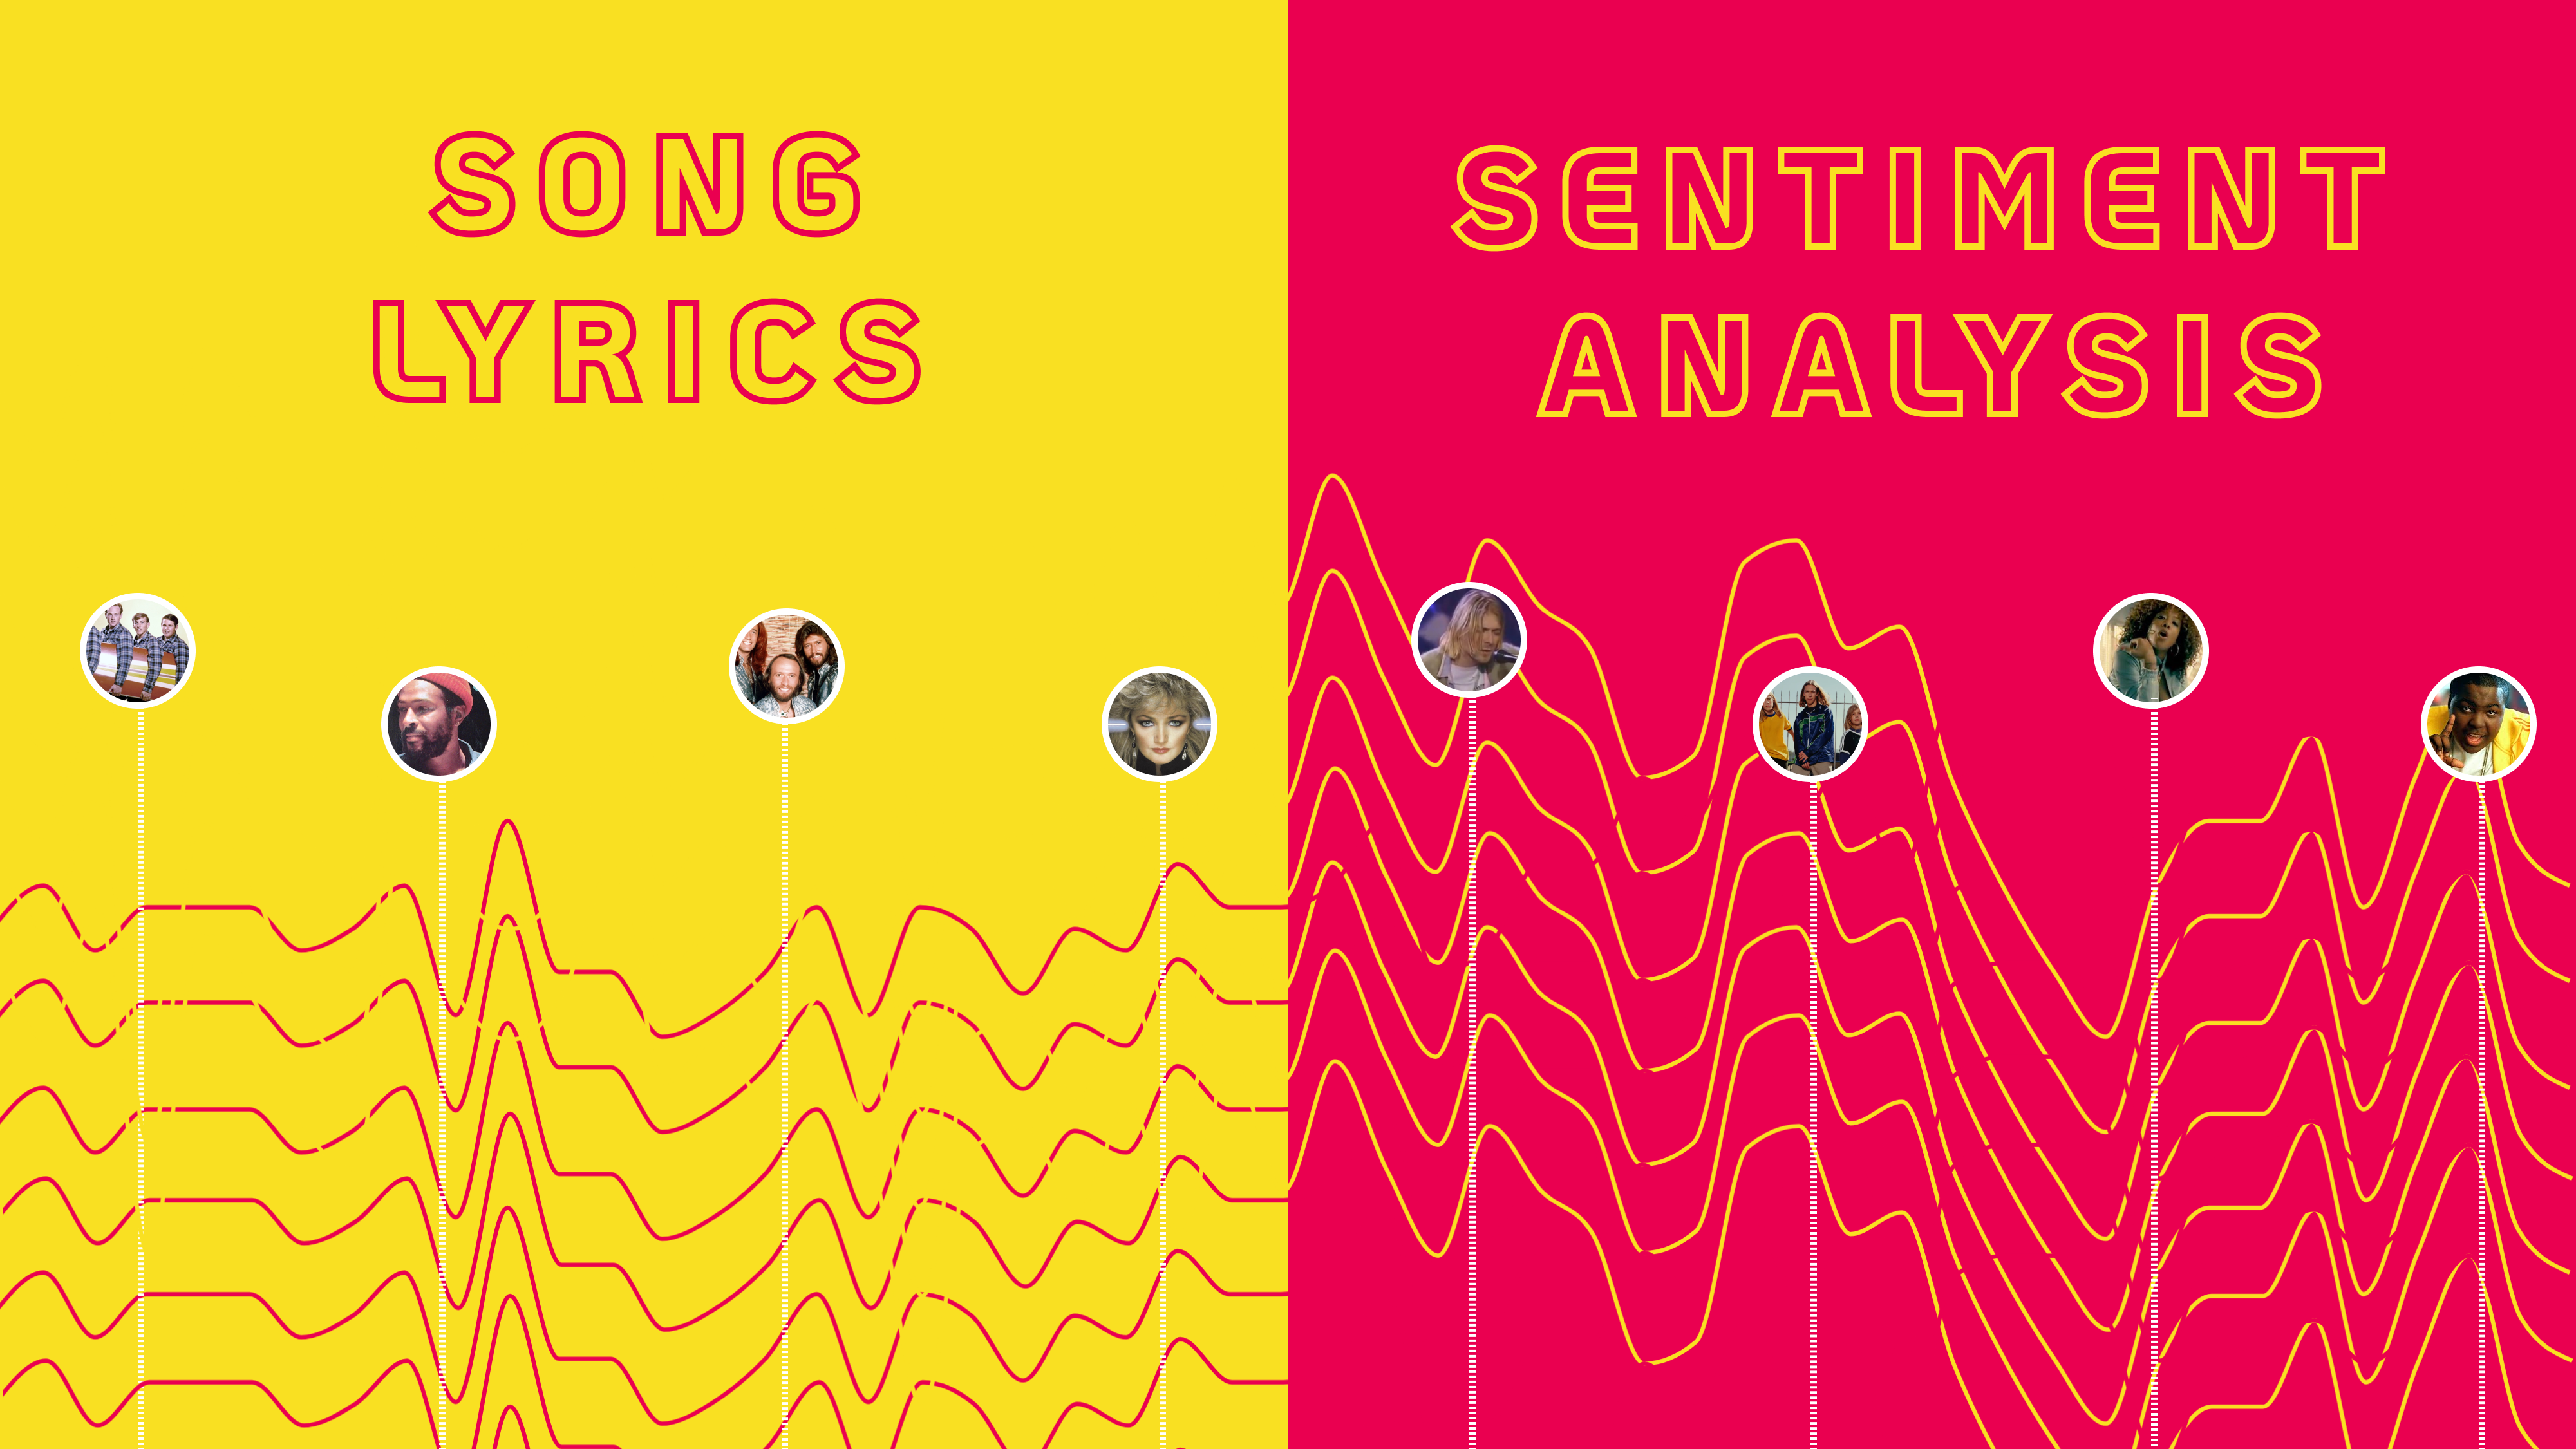 We used sentiment analysis to model 5100 Billboard chart-toppers between 1964 and 2015. Our analysis predicted whether song lyrics were positive, negative or neutral as well as detecting the topic and intent behind the most popular tunes in music history.